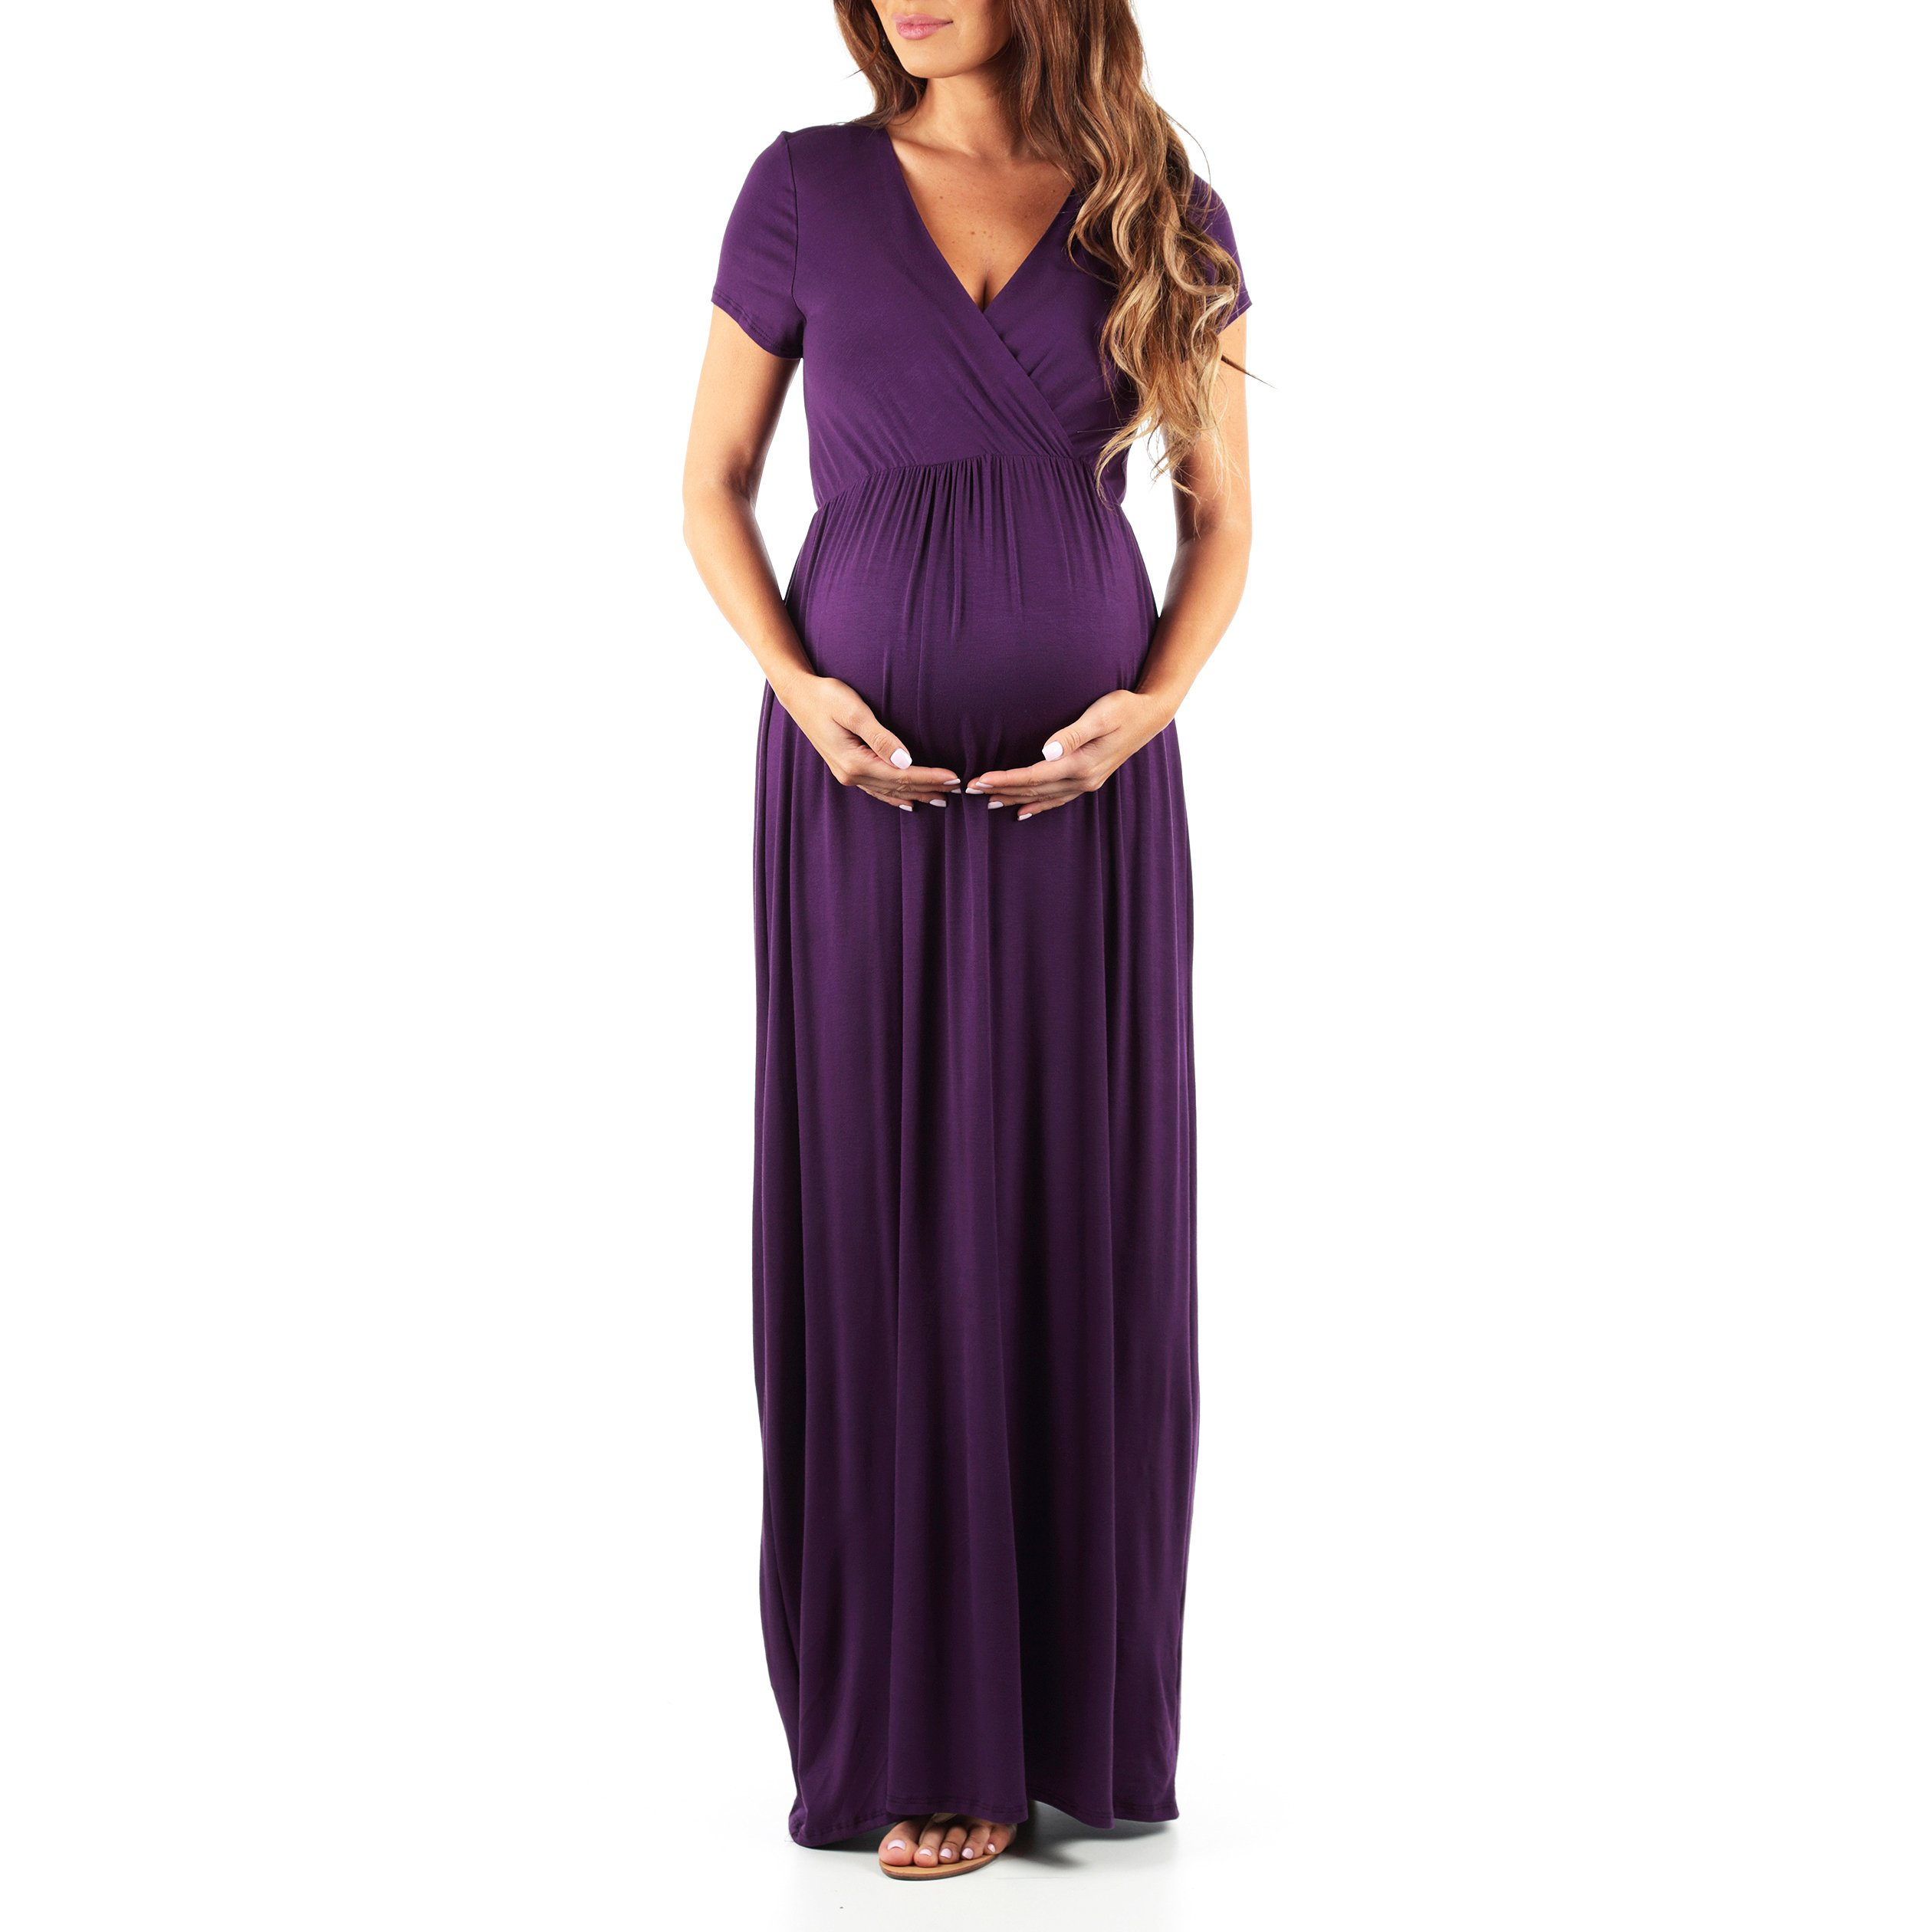 Mother Bee Maternity Short Sleeve Dress by Made In USA, Eggplant, Large